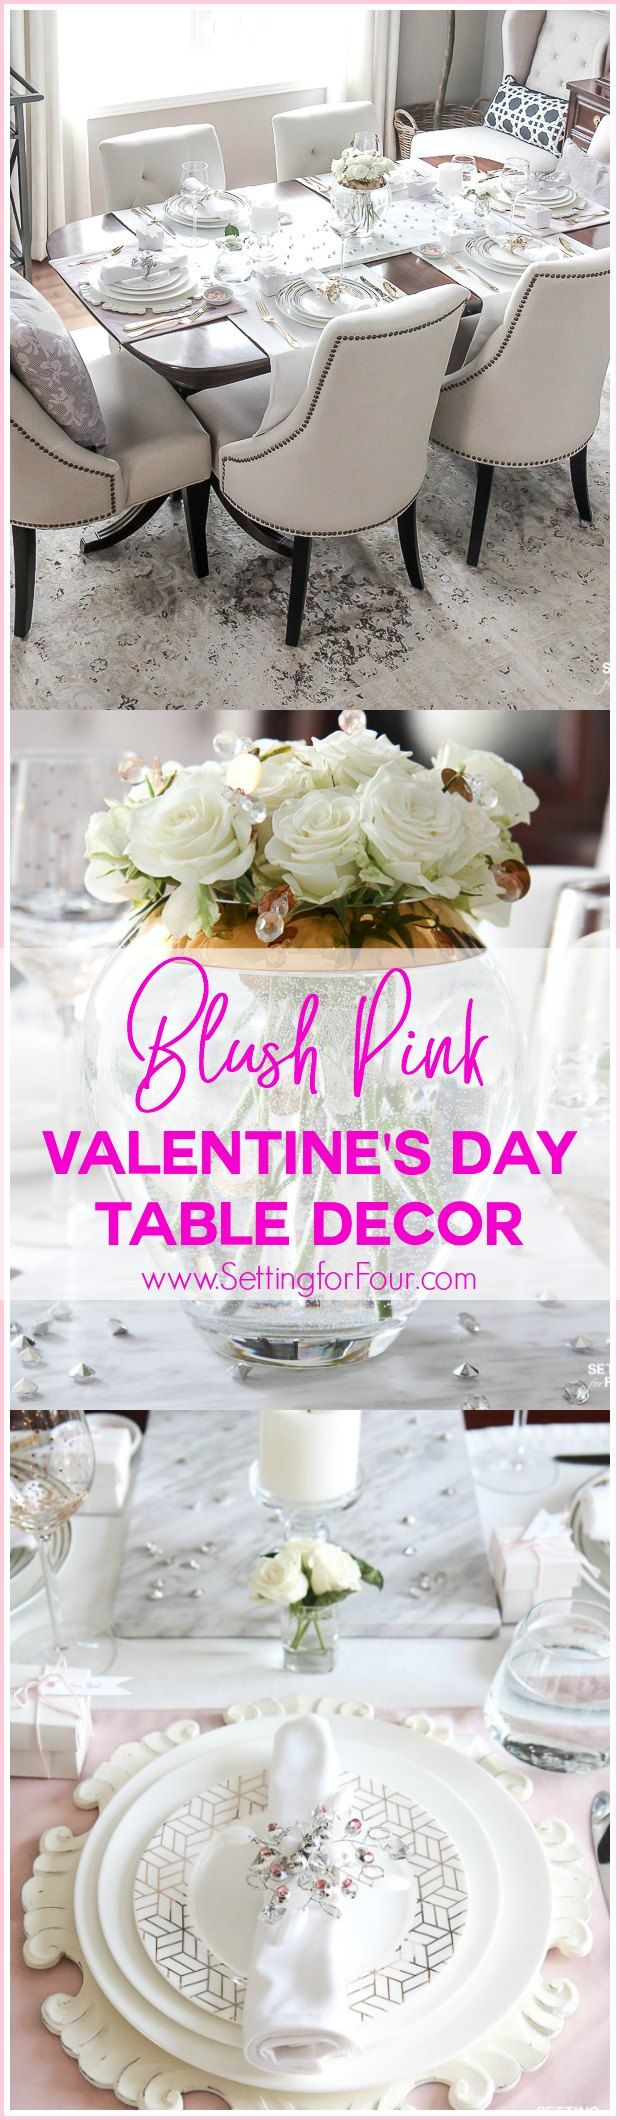 Blush Pink Valentines Day Table Decorations 140